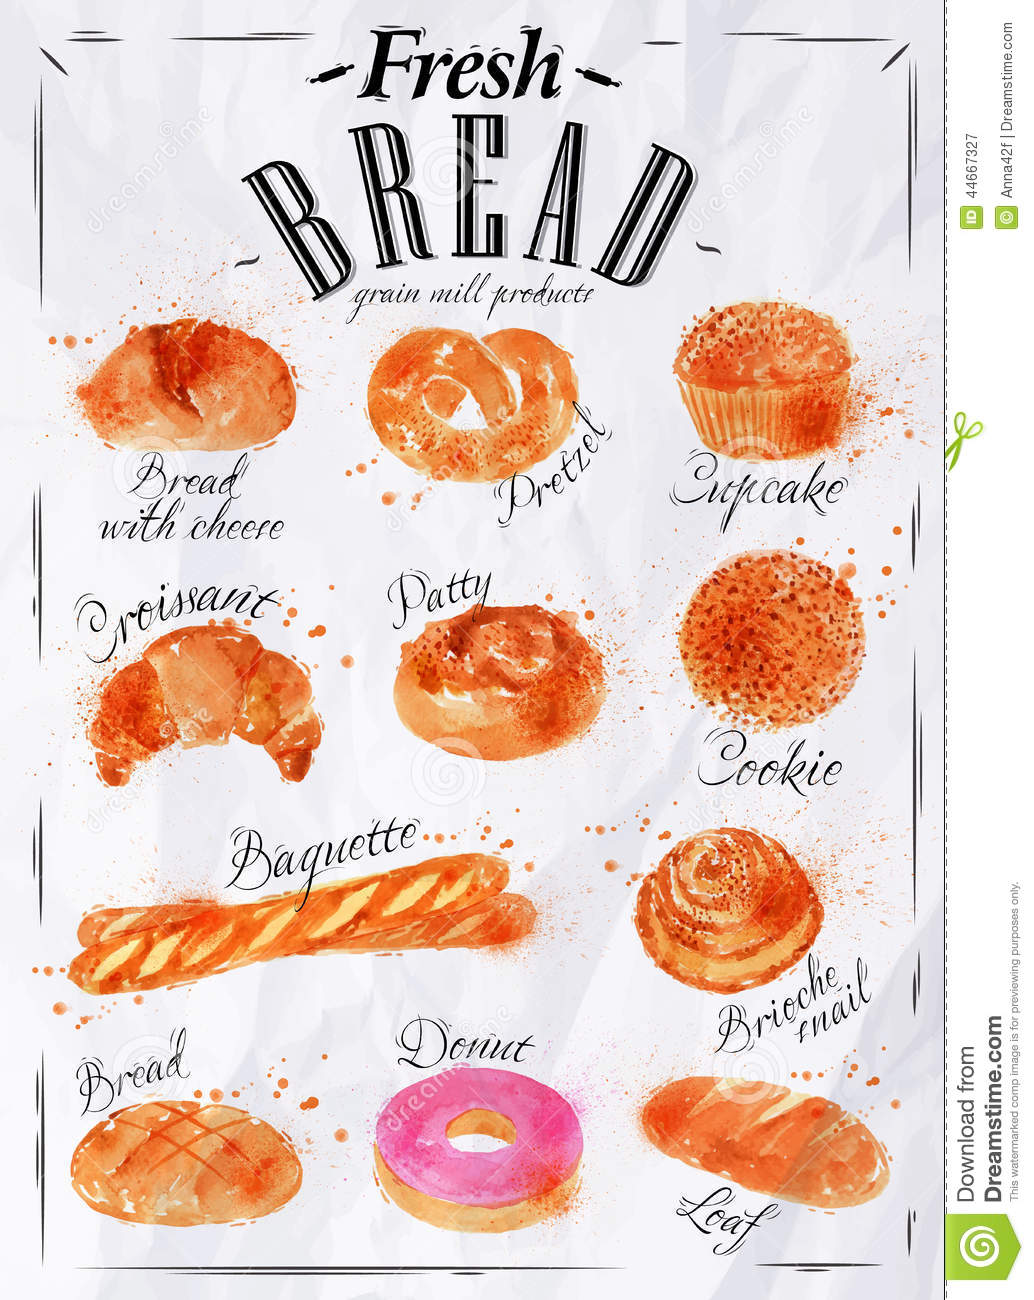 Bread Products Poster Paper Stock Vector Illustration Of